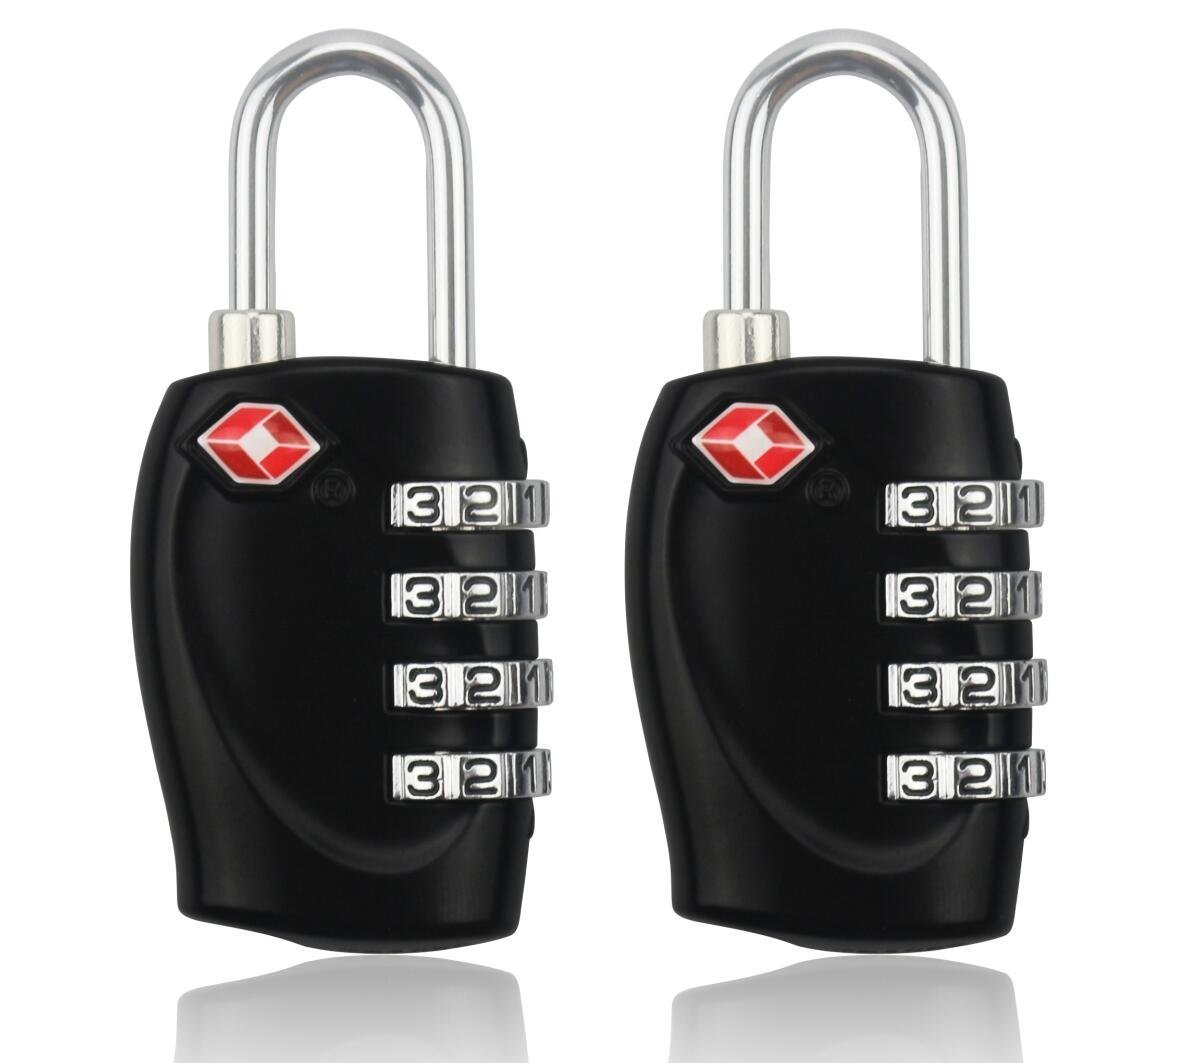 BlueBeach® 2 PCS TSA Travel Lock for Suitcase Luggage Security 4 Digit Combination Number Padlock travel-lock-1